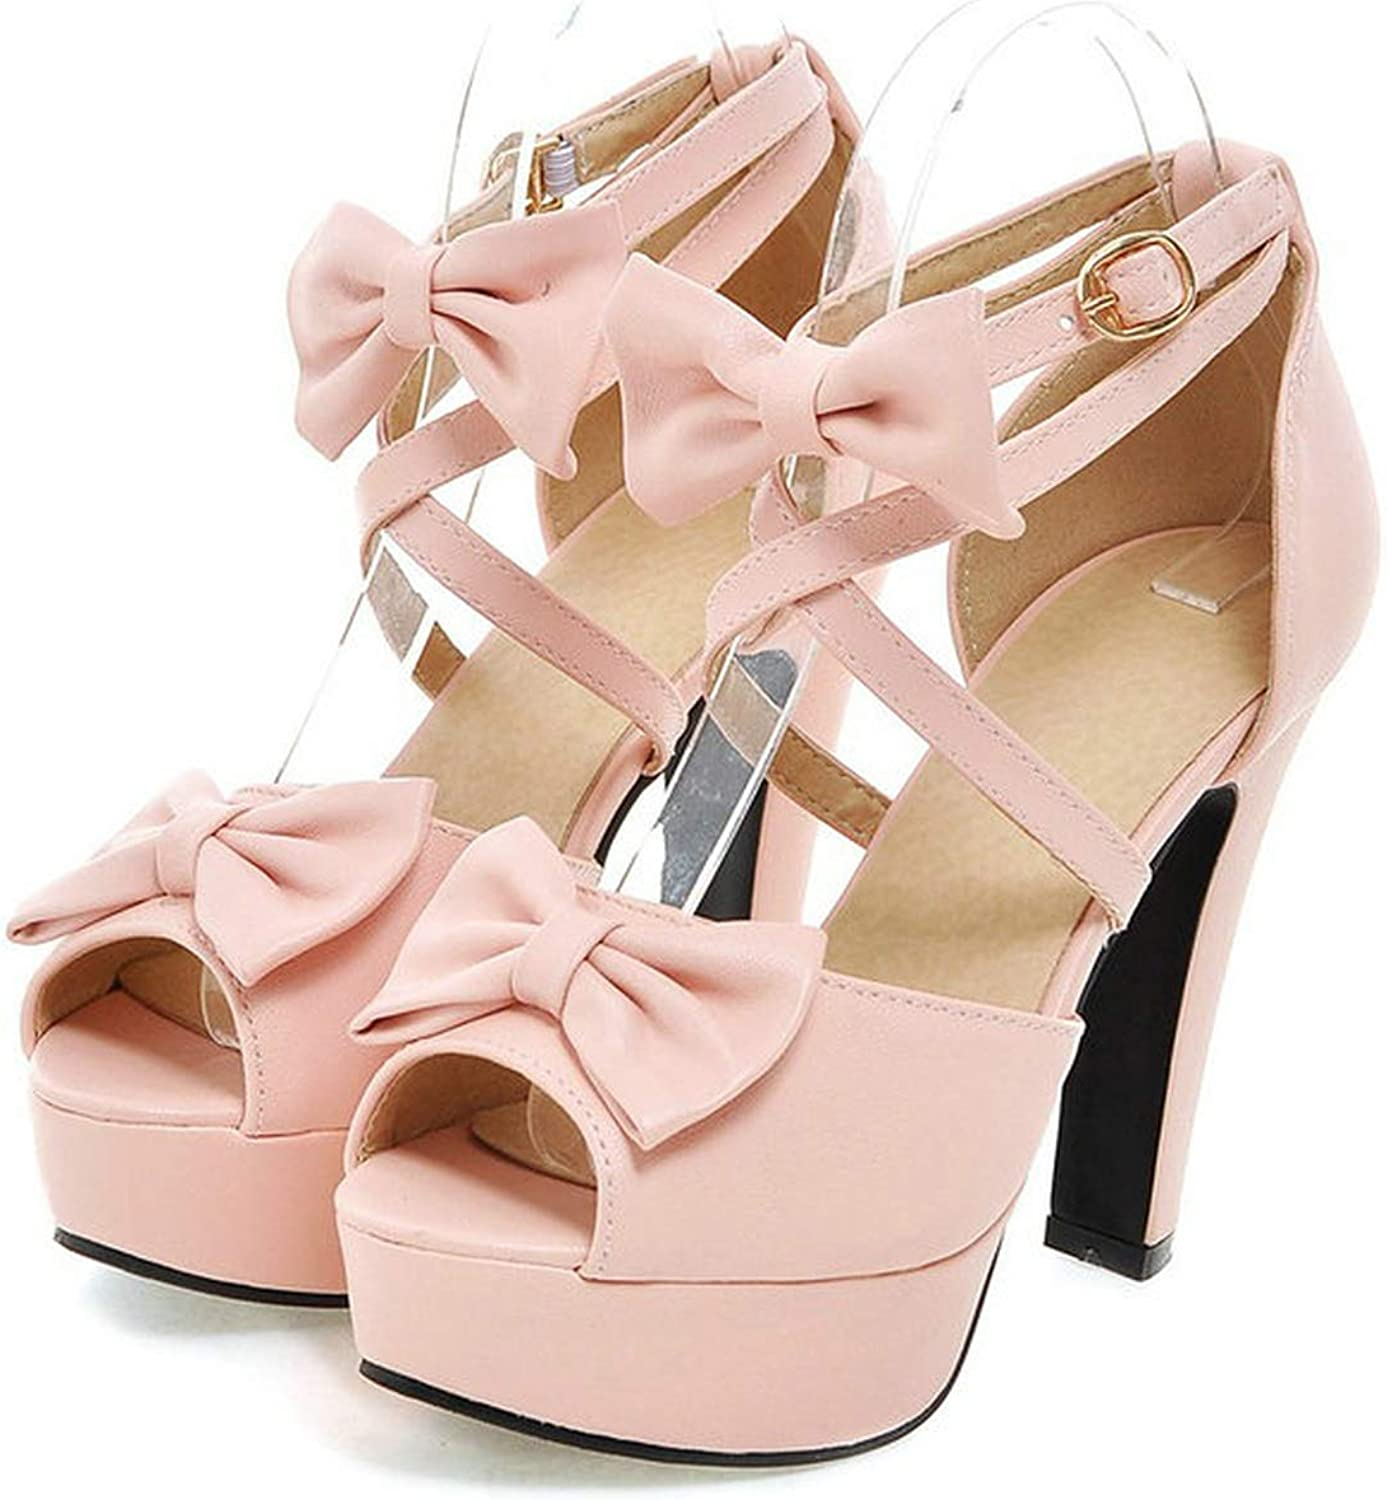 Ladies shoes 11.5cm high Heel Sandals Candy color Bowties Girl's Open Toe Casual Summer shoes